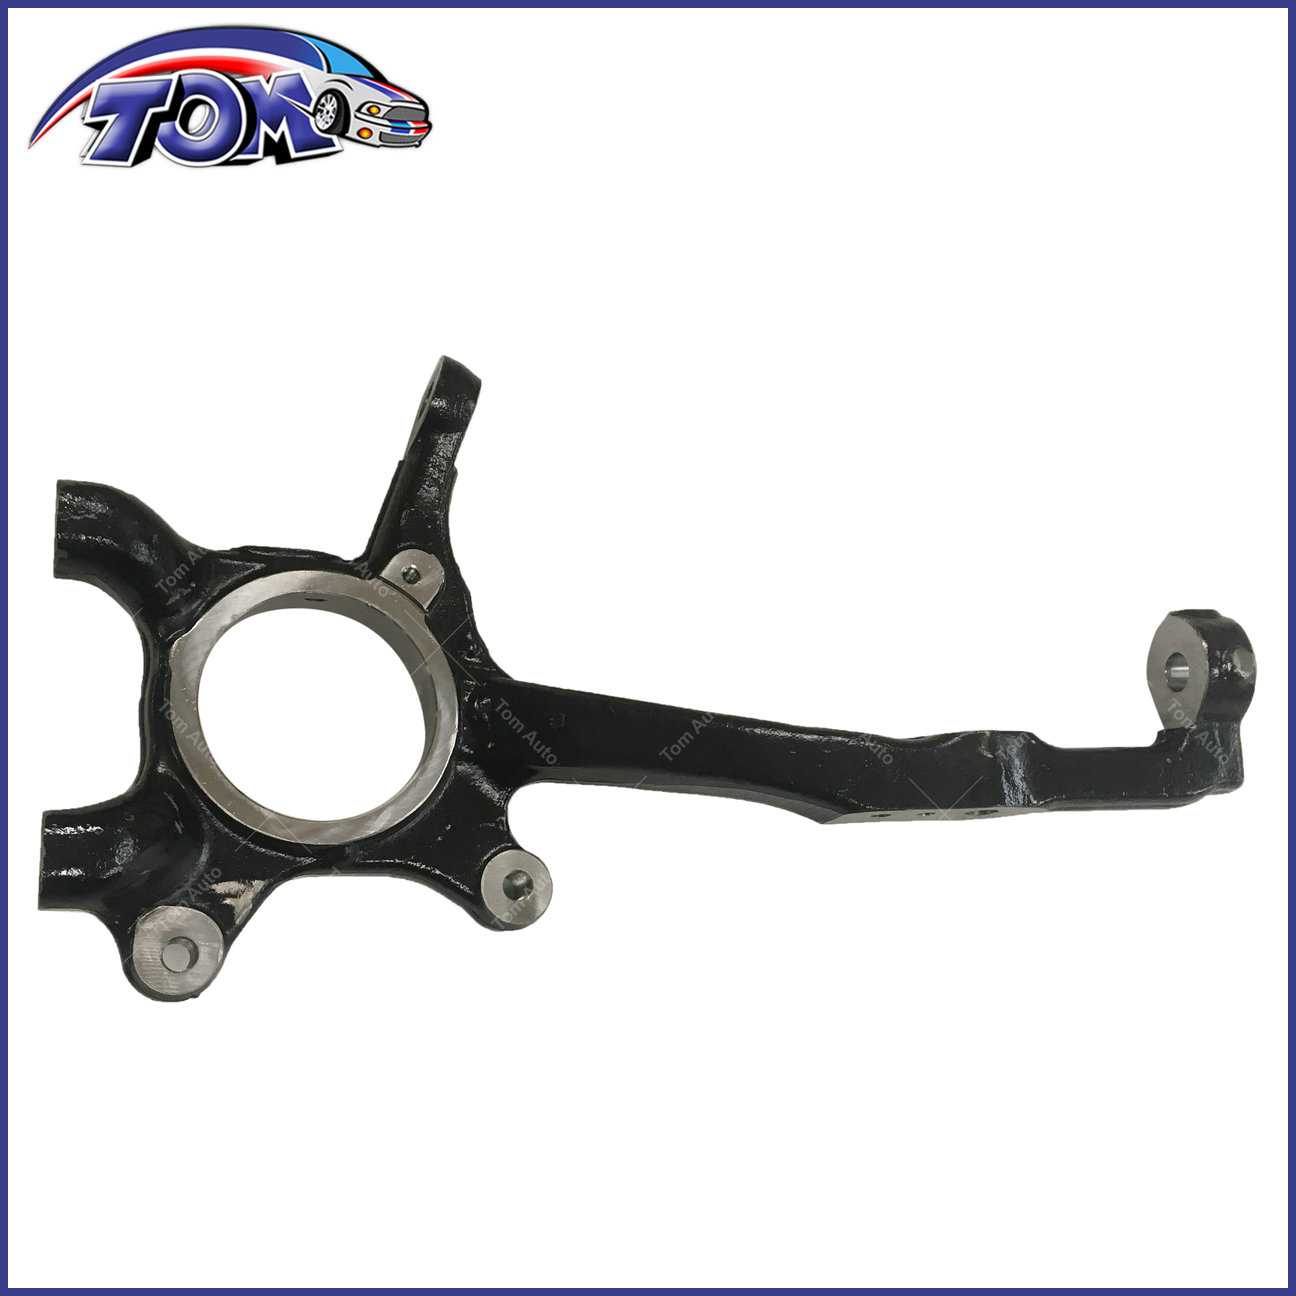 New Front Right Steering Knuckle Fits Toyota 4runner 43211-60170